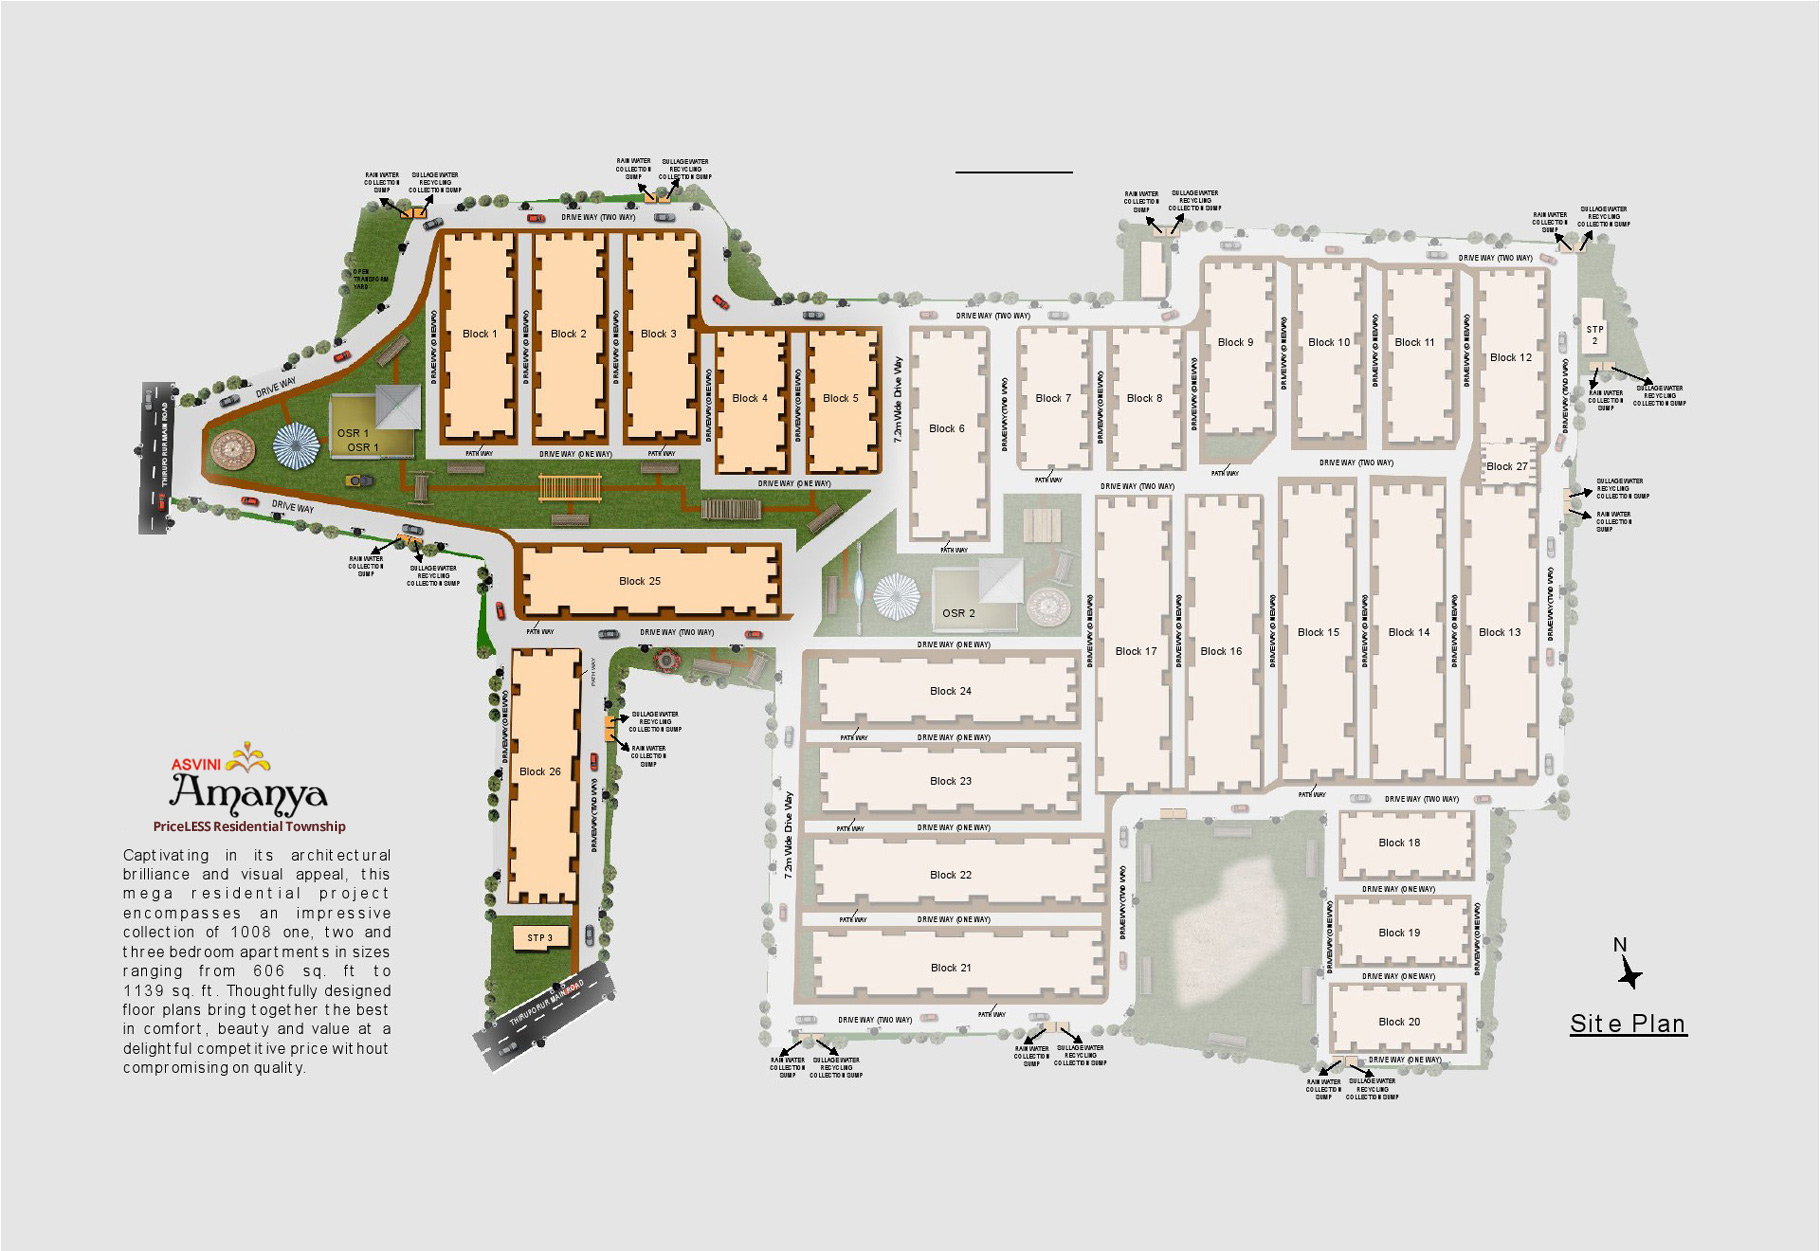 Apartments Site Plan Asvini Amanya